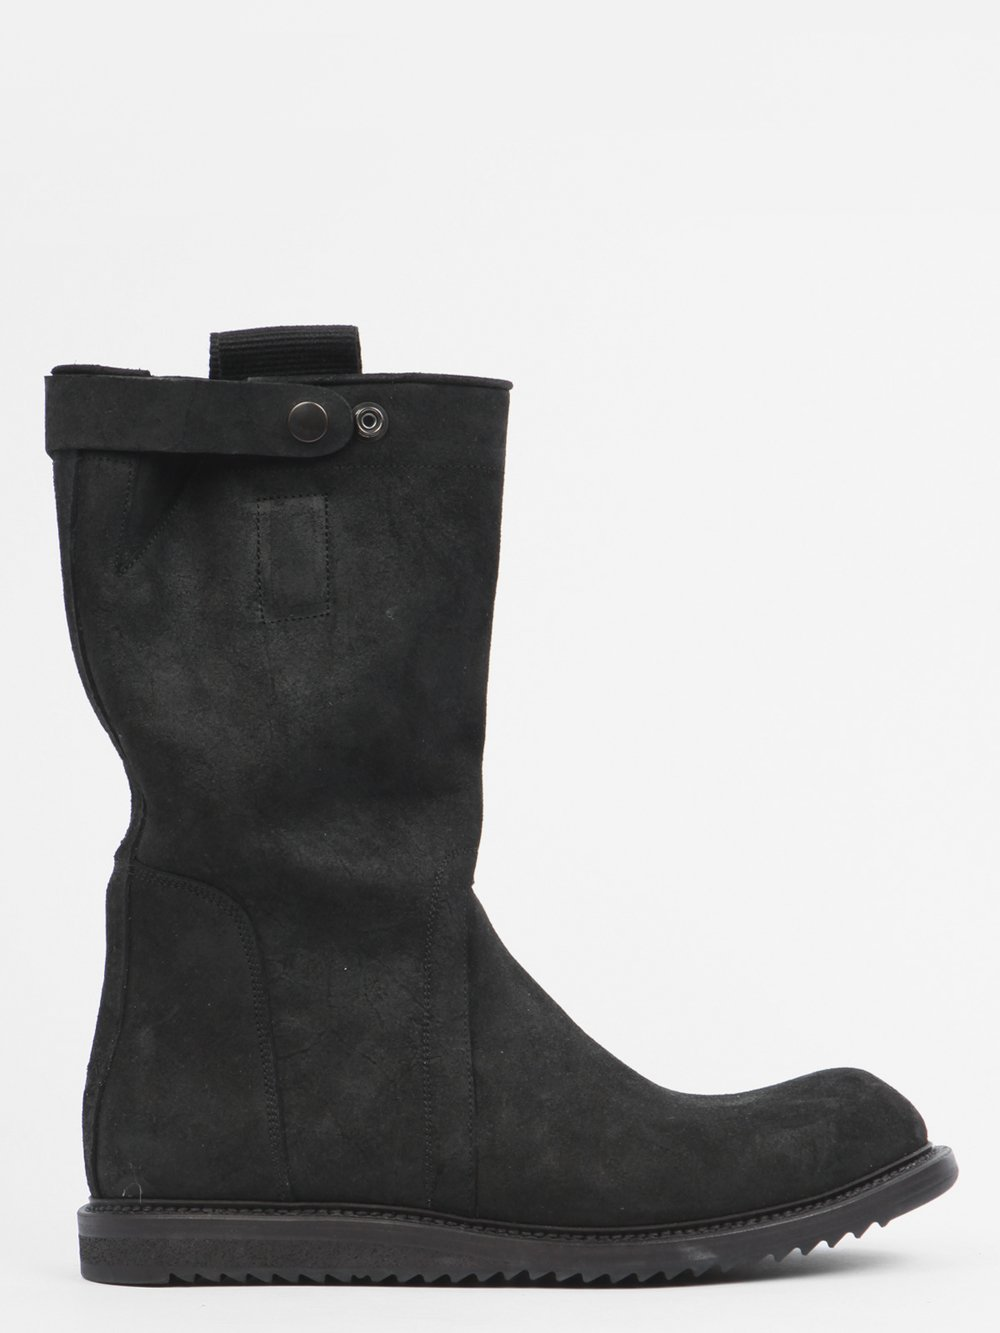 RICK OWENS - PULL ON BOOTS